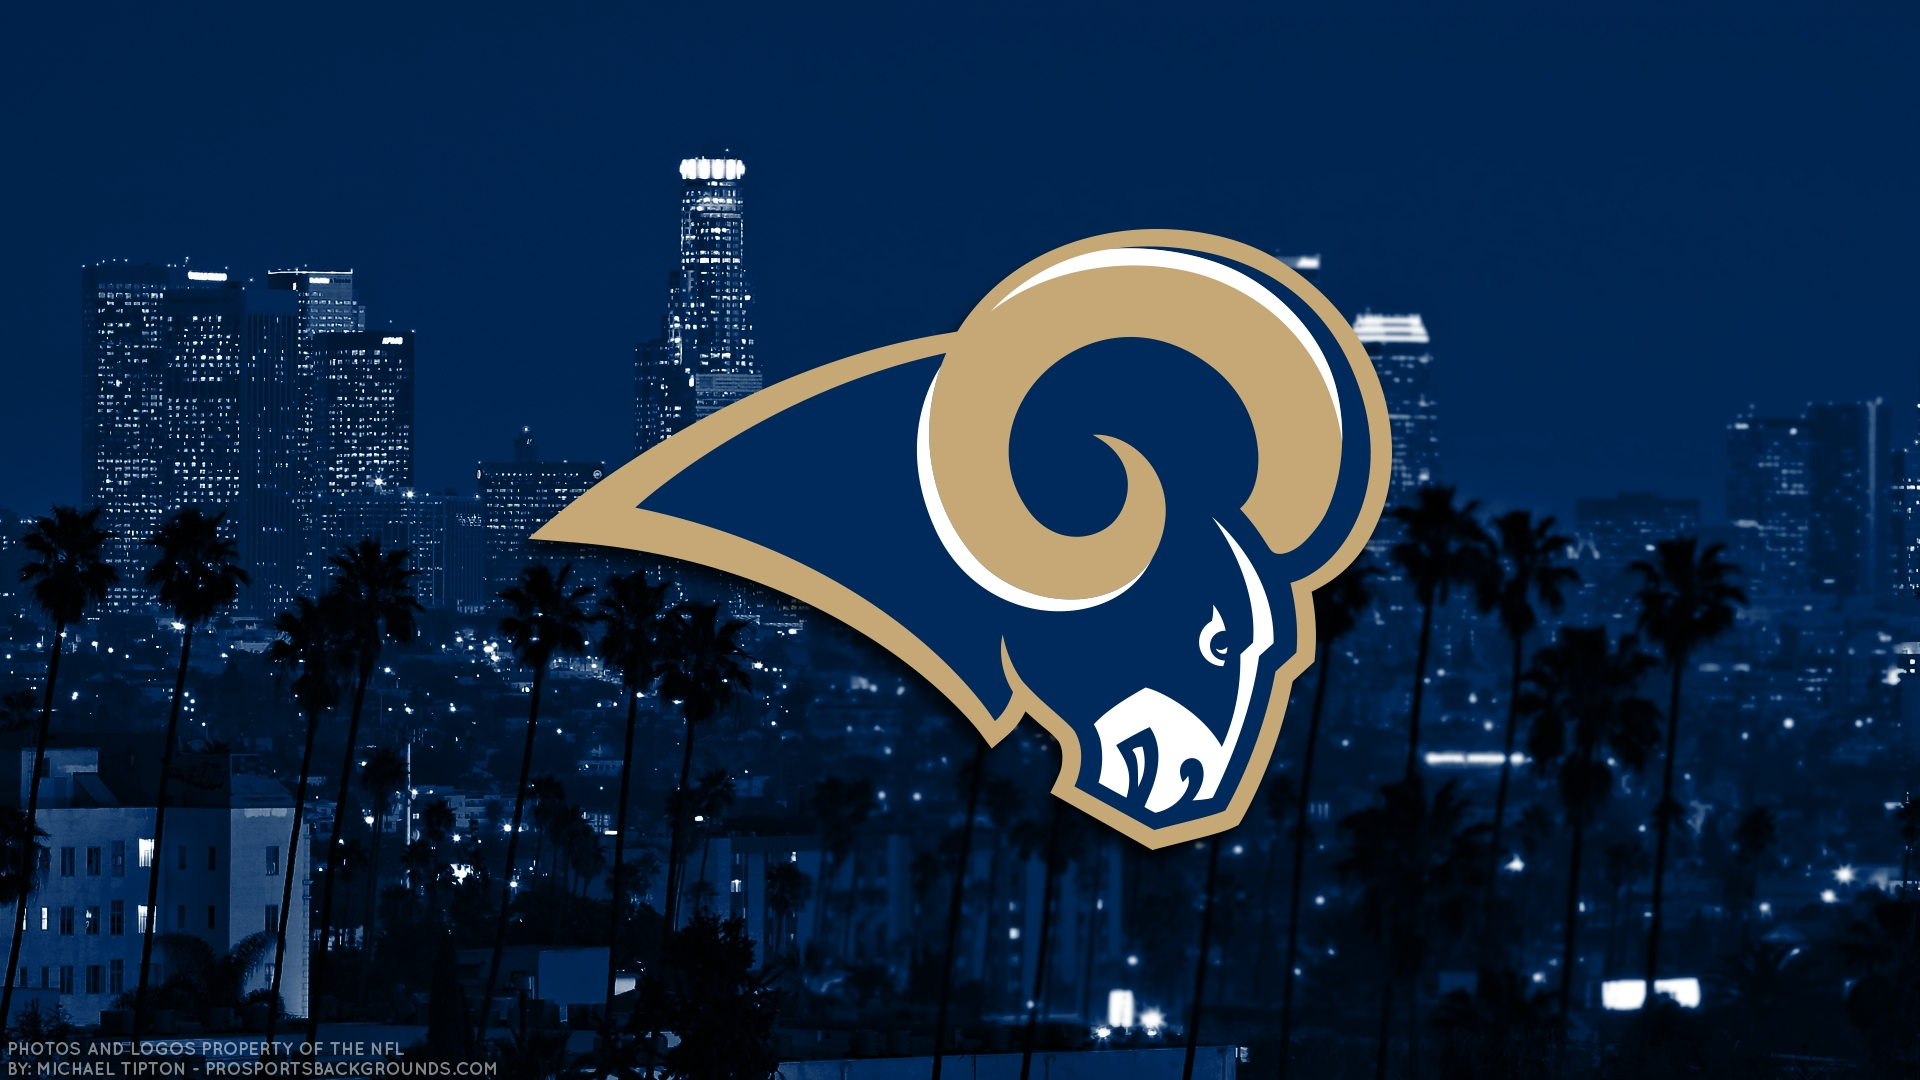 2018 los angeles rams wallpapers - pc |iphone| android